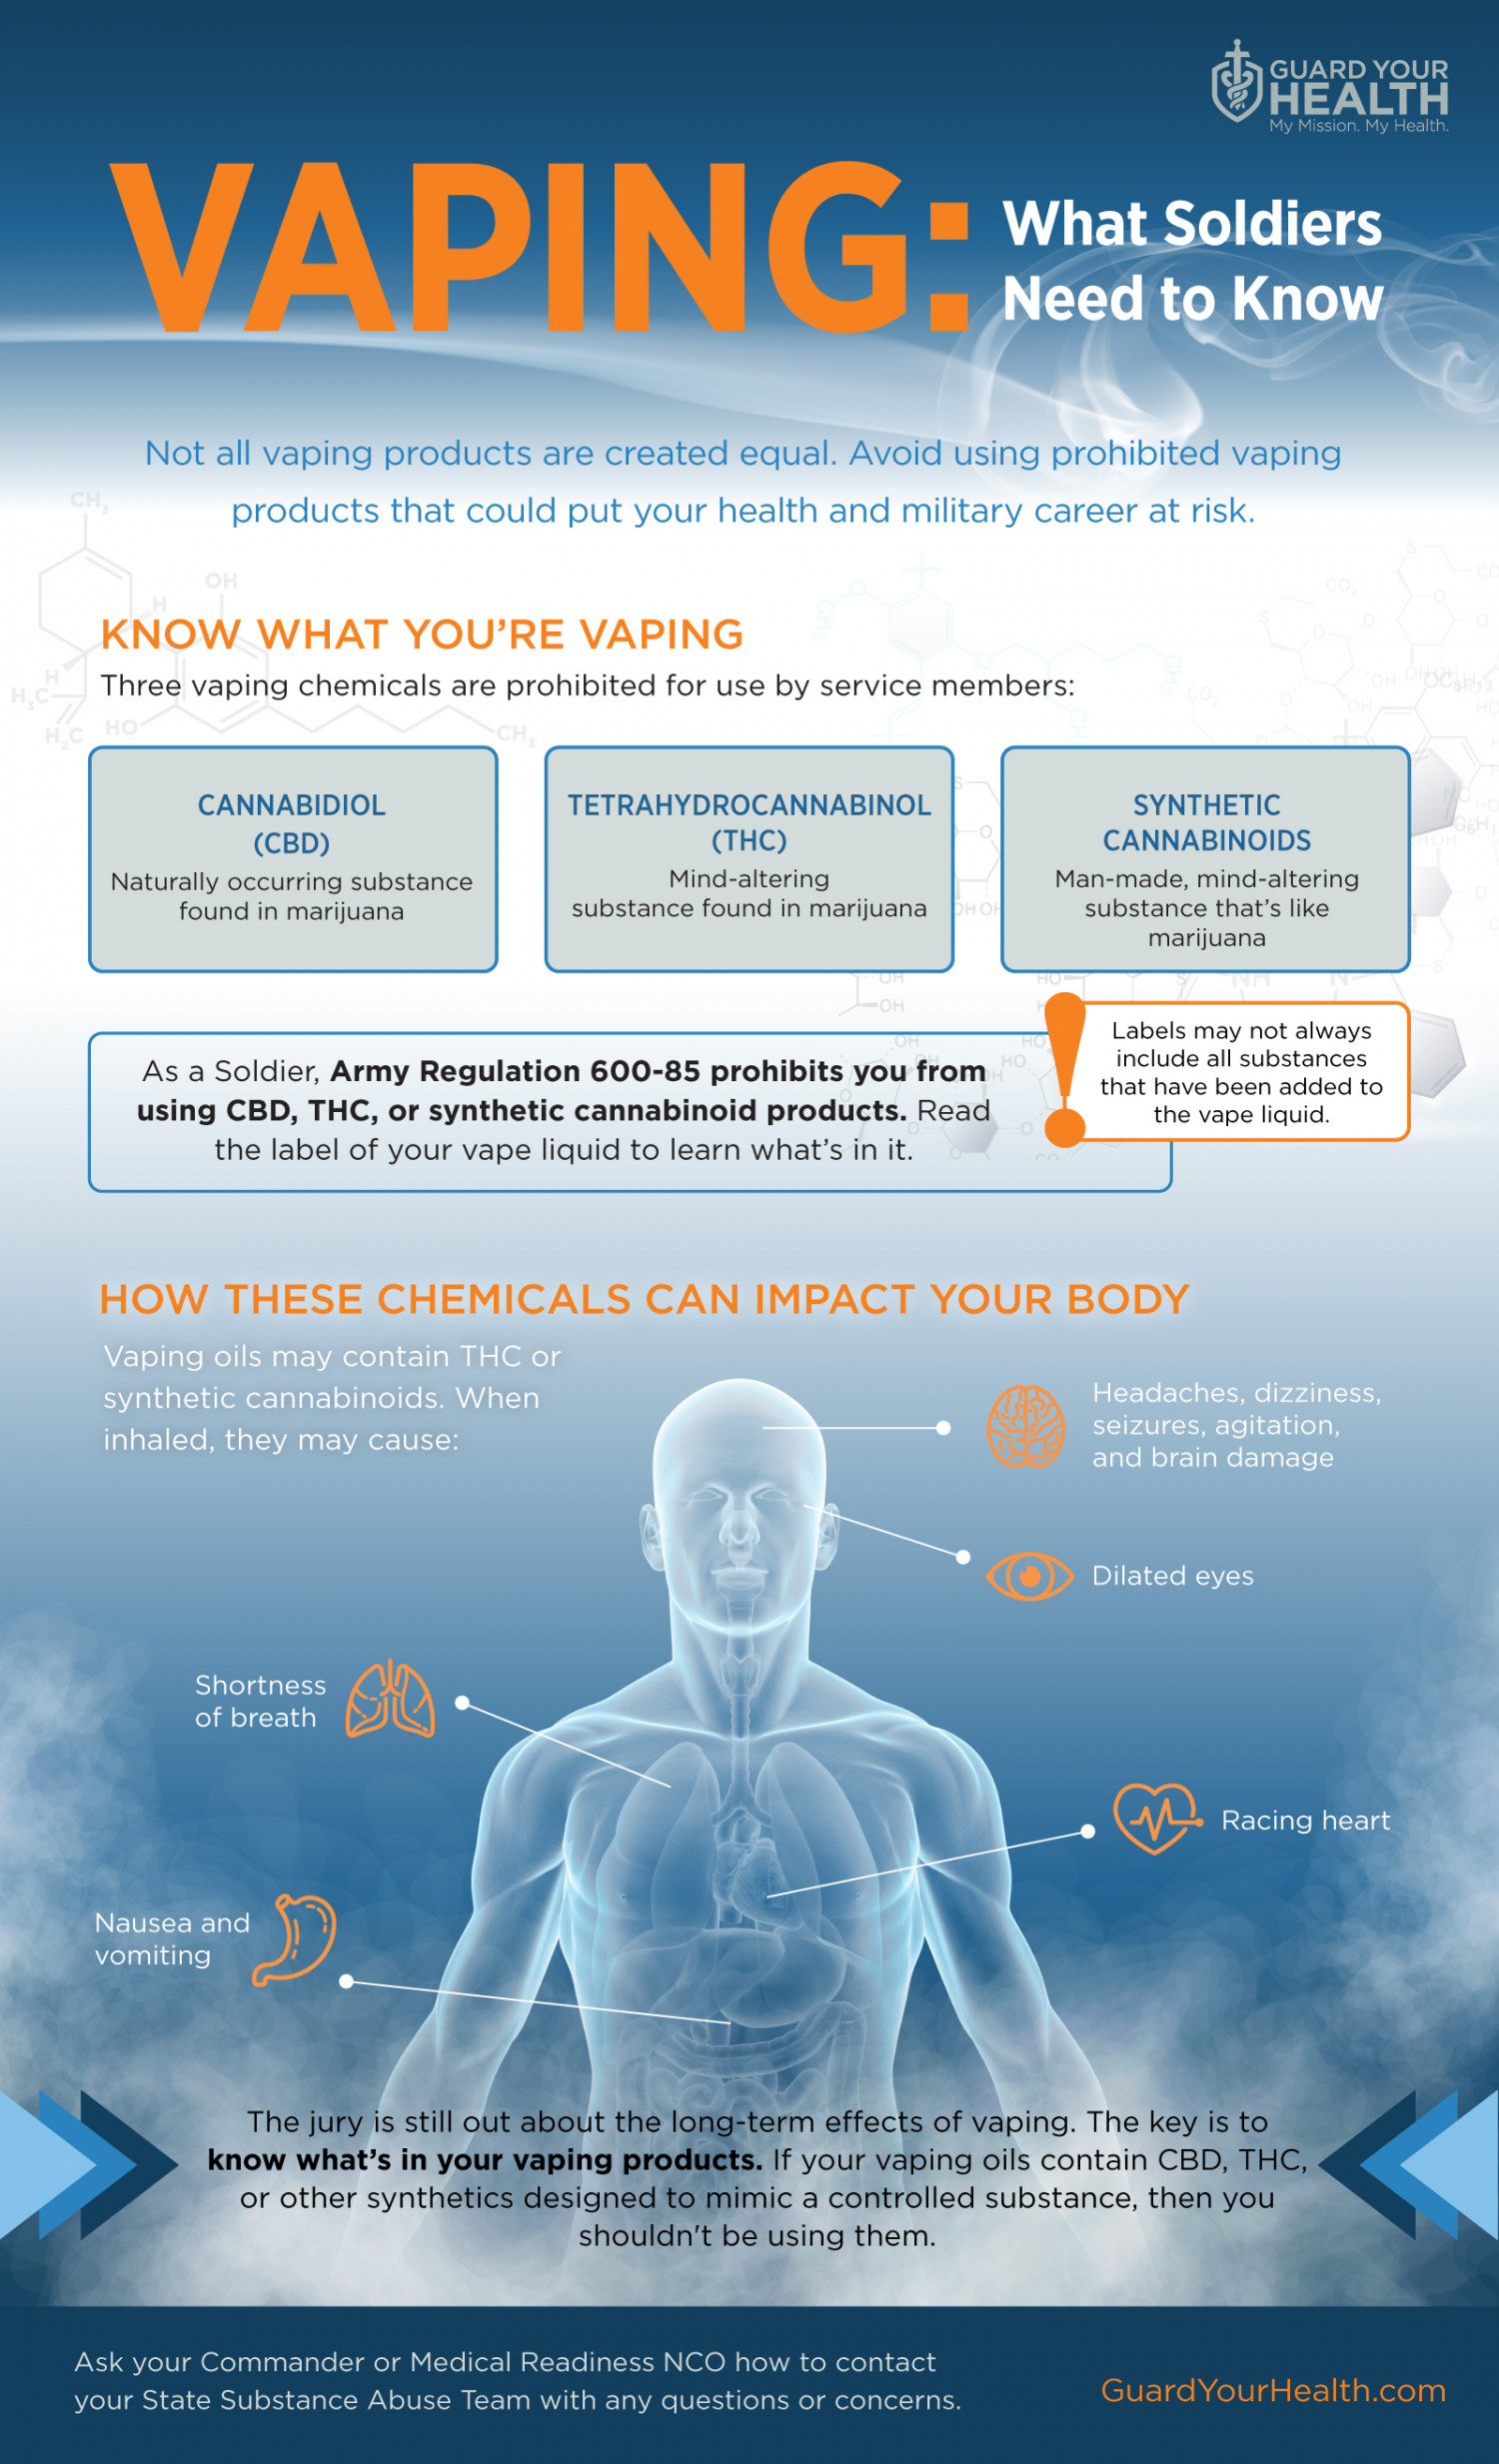 Vaping: What Soldiers Need to Know Infographic